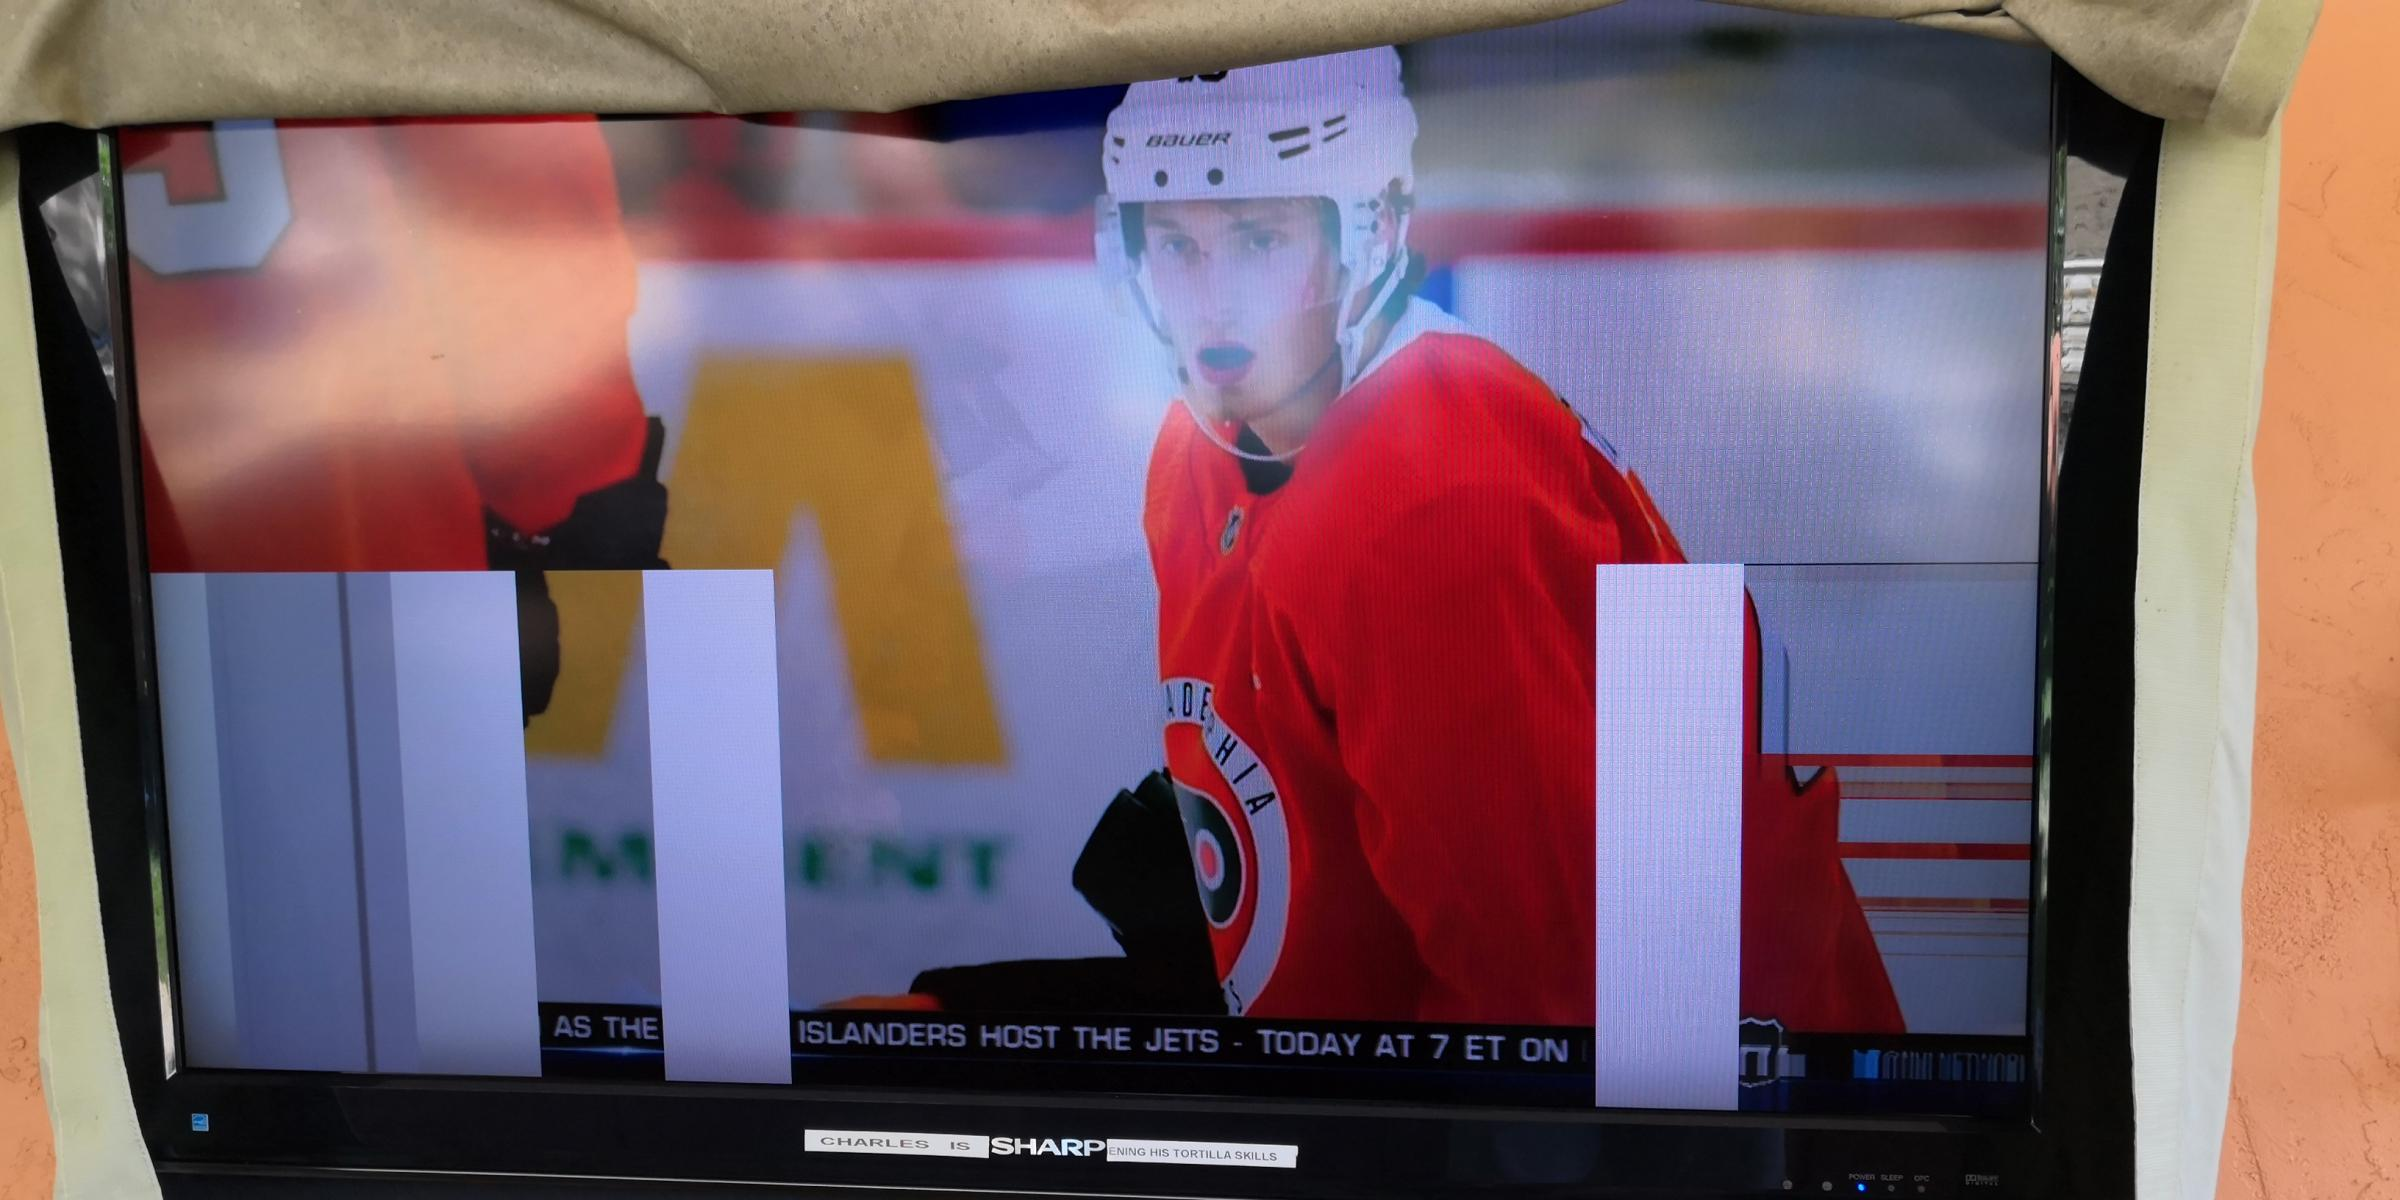 Issue with tv image-img_20191006_152941_1570397073276.jpg